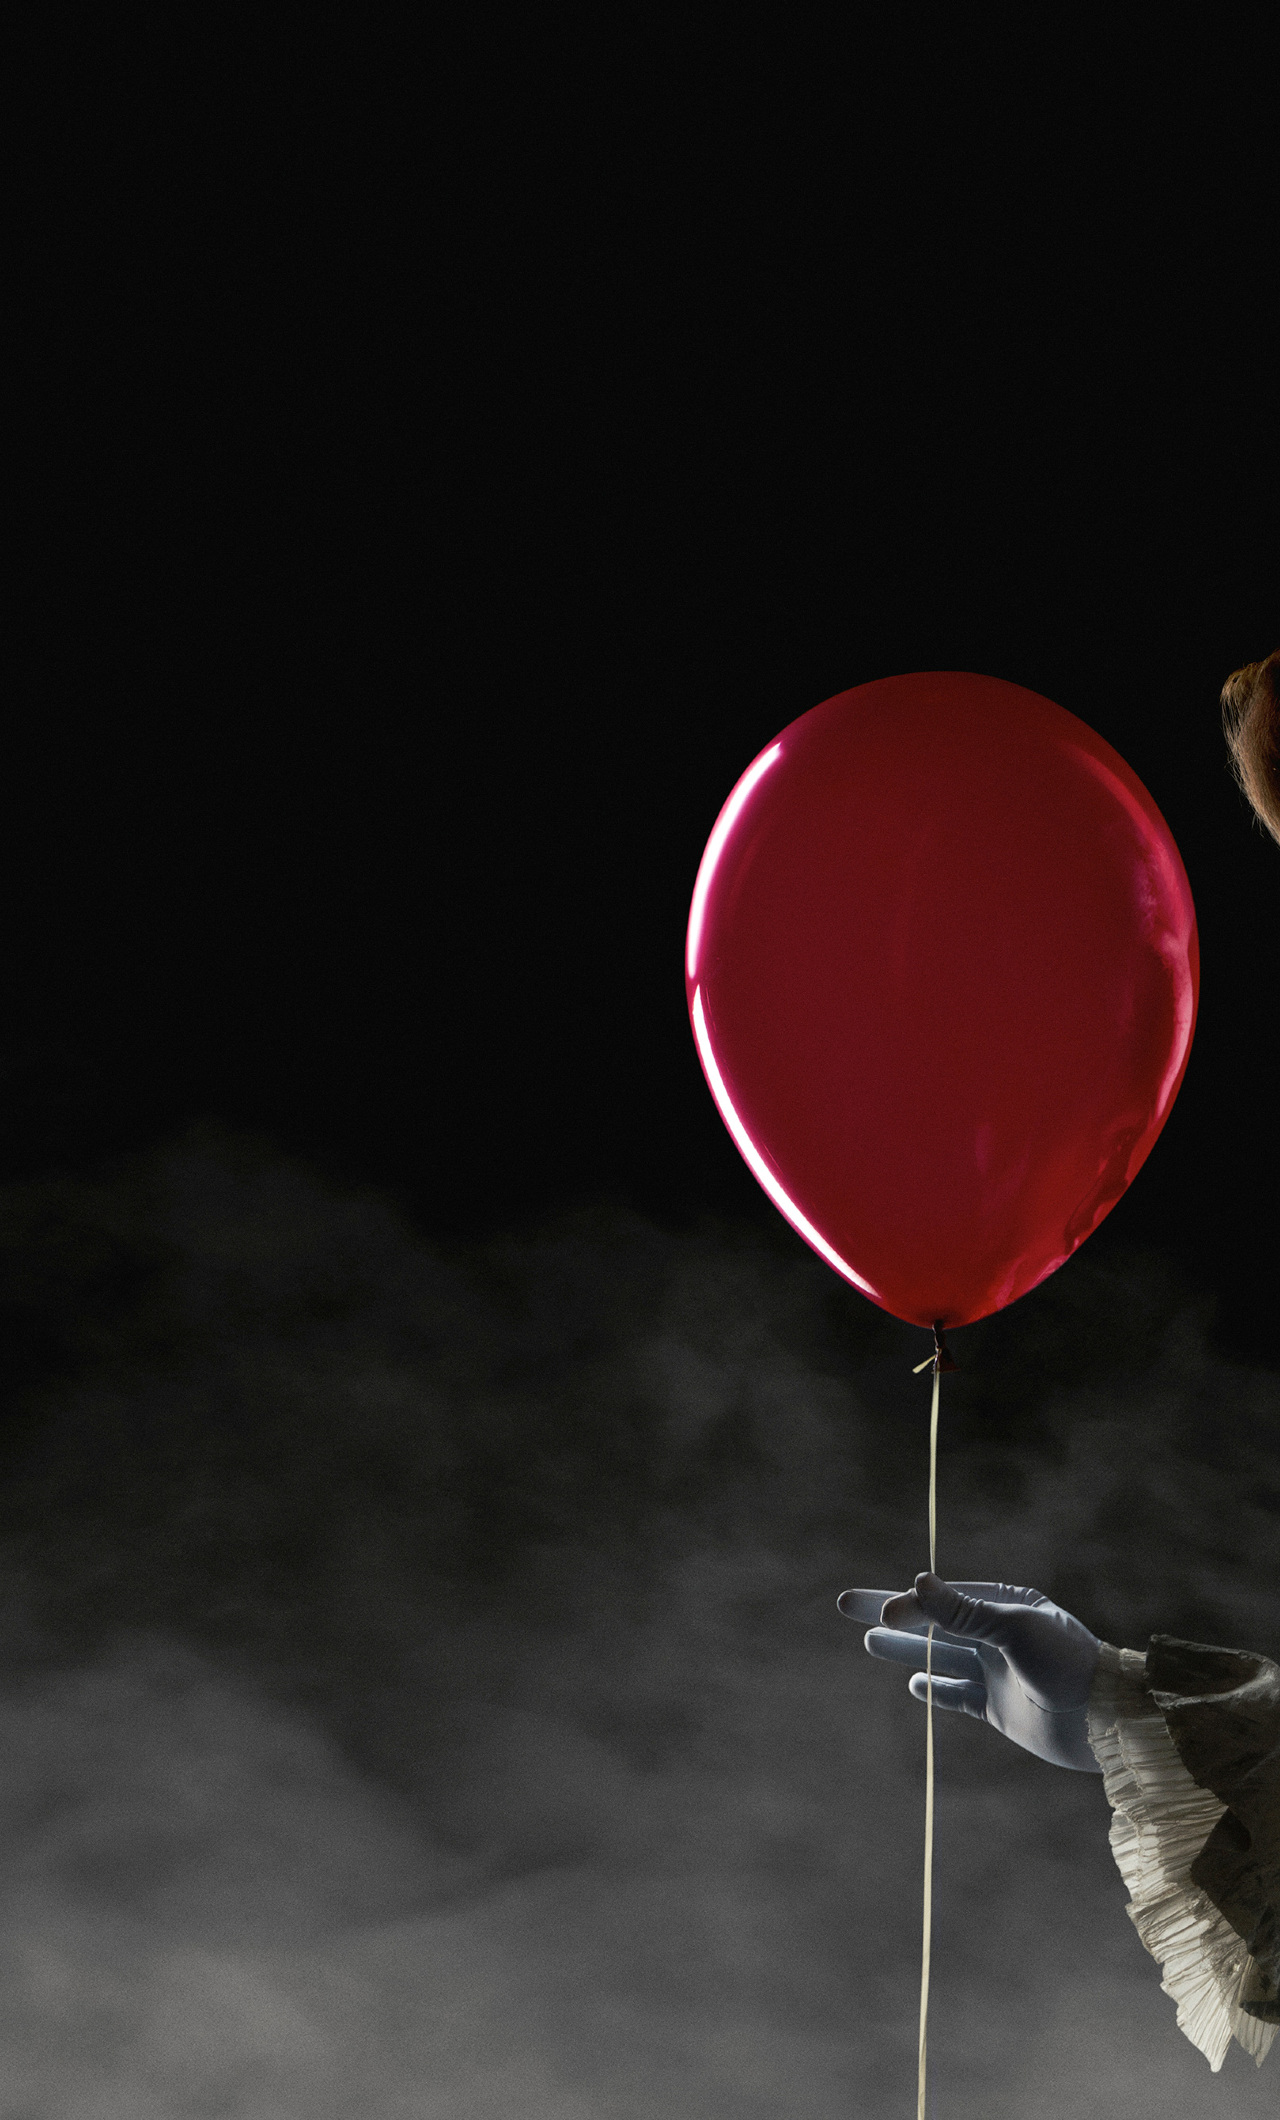 The red balloon film